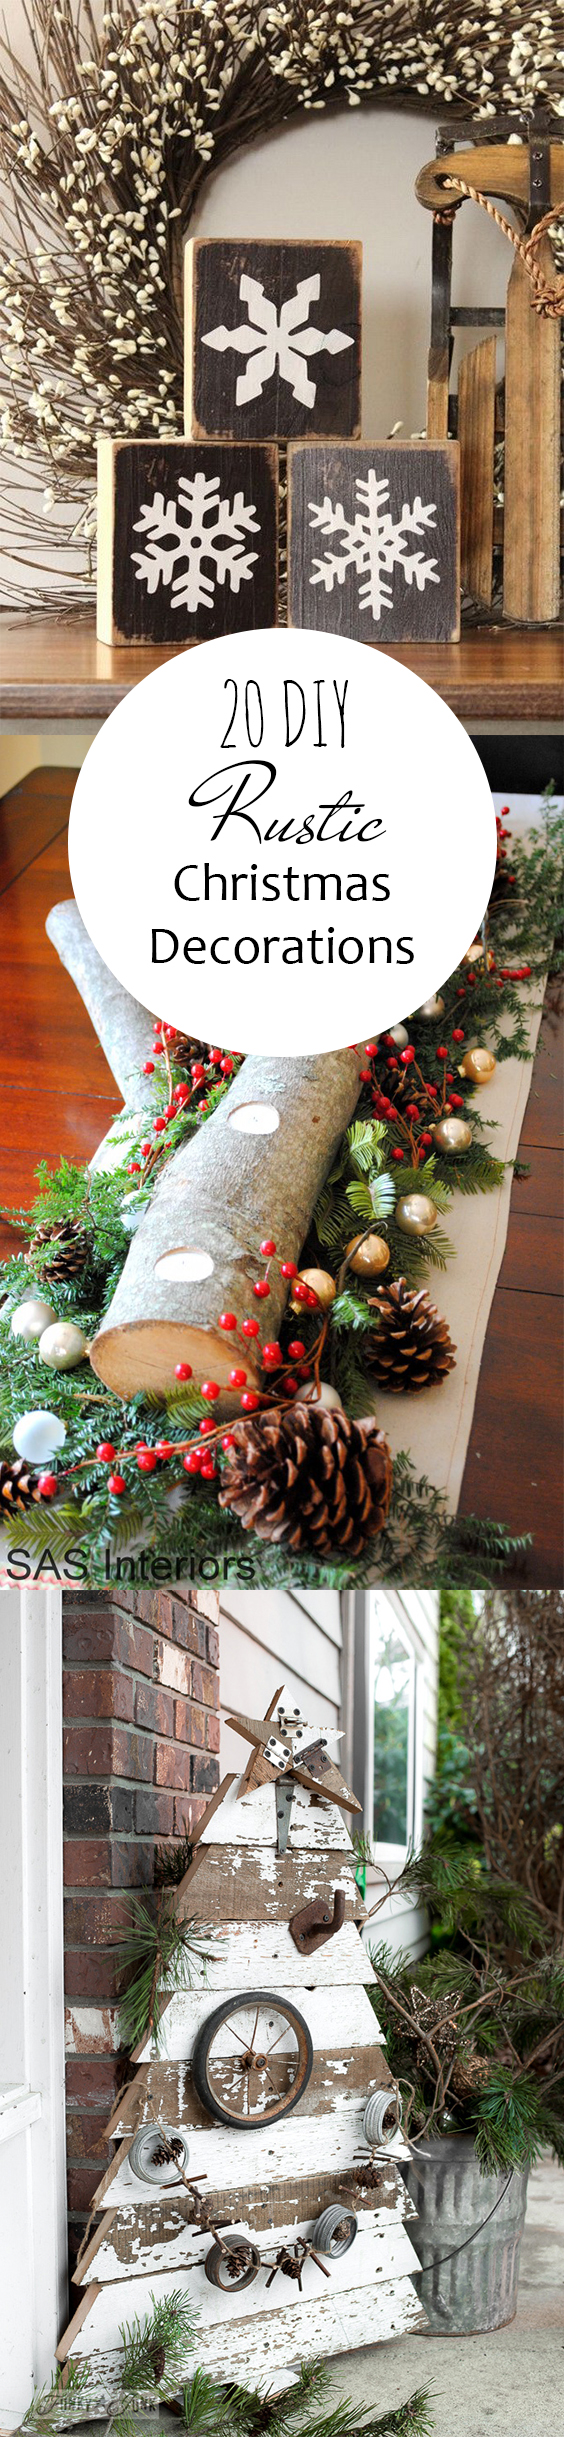 20 DIY Rustic Christmas Decorations - Page 22 of 22 ...